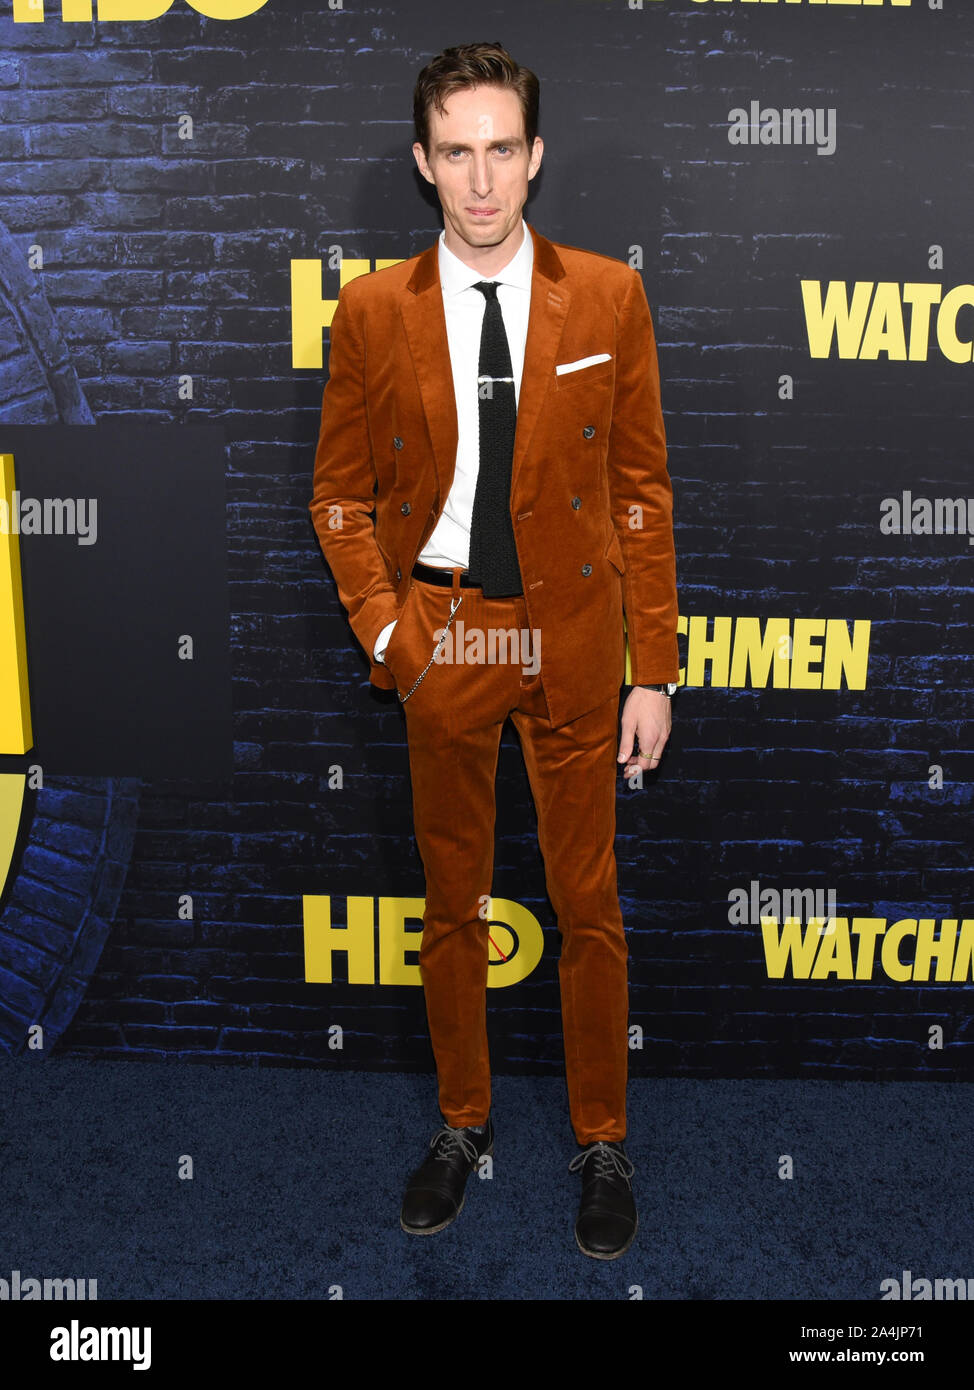 October 14, 2019, Hollywood, California, USA: Dustin Ingram attends the HBO Series Premiere of the Watchmen. (Credit Image: © Billy Bennight/ZUMA Wire) Stock Photo